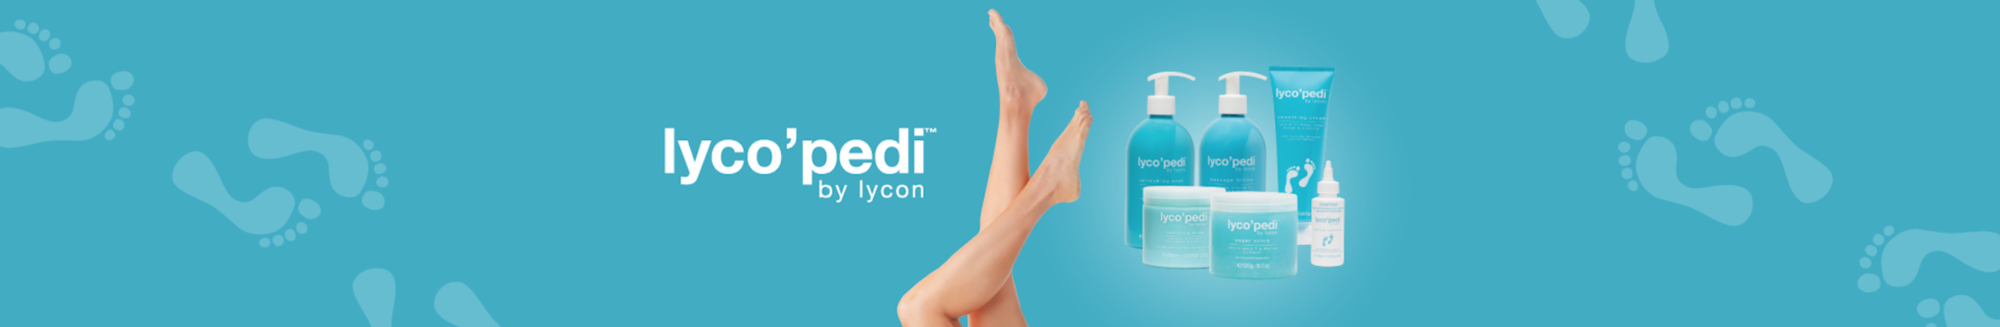 Lycon VOET lyco'pedi (Pedicuresysteem)